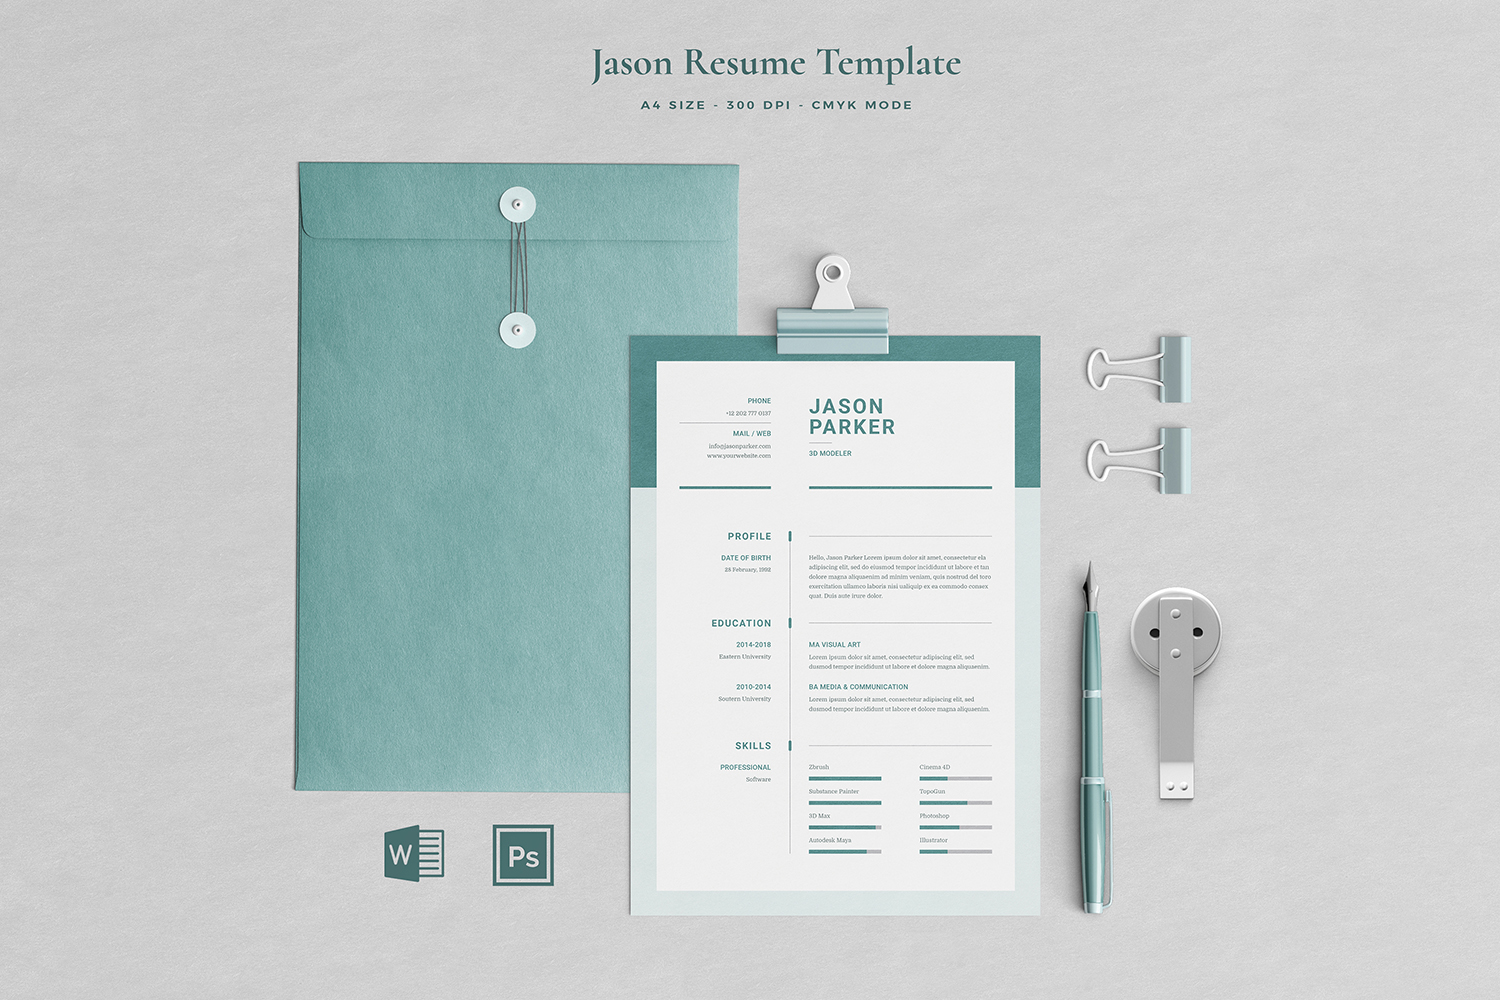 Jason Resume with Cover Letter Professional Template example image 1